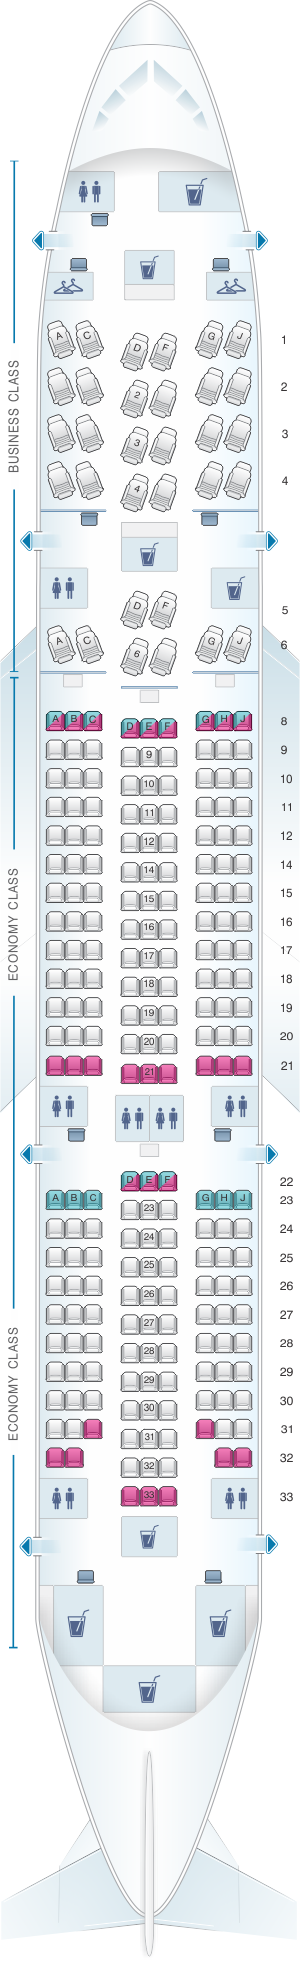 Seat map for Aeromexico Boeing B787-8